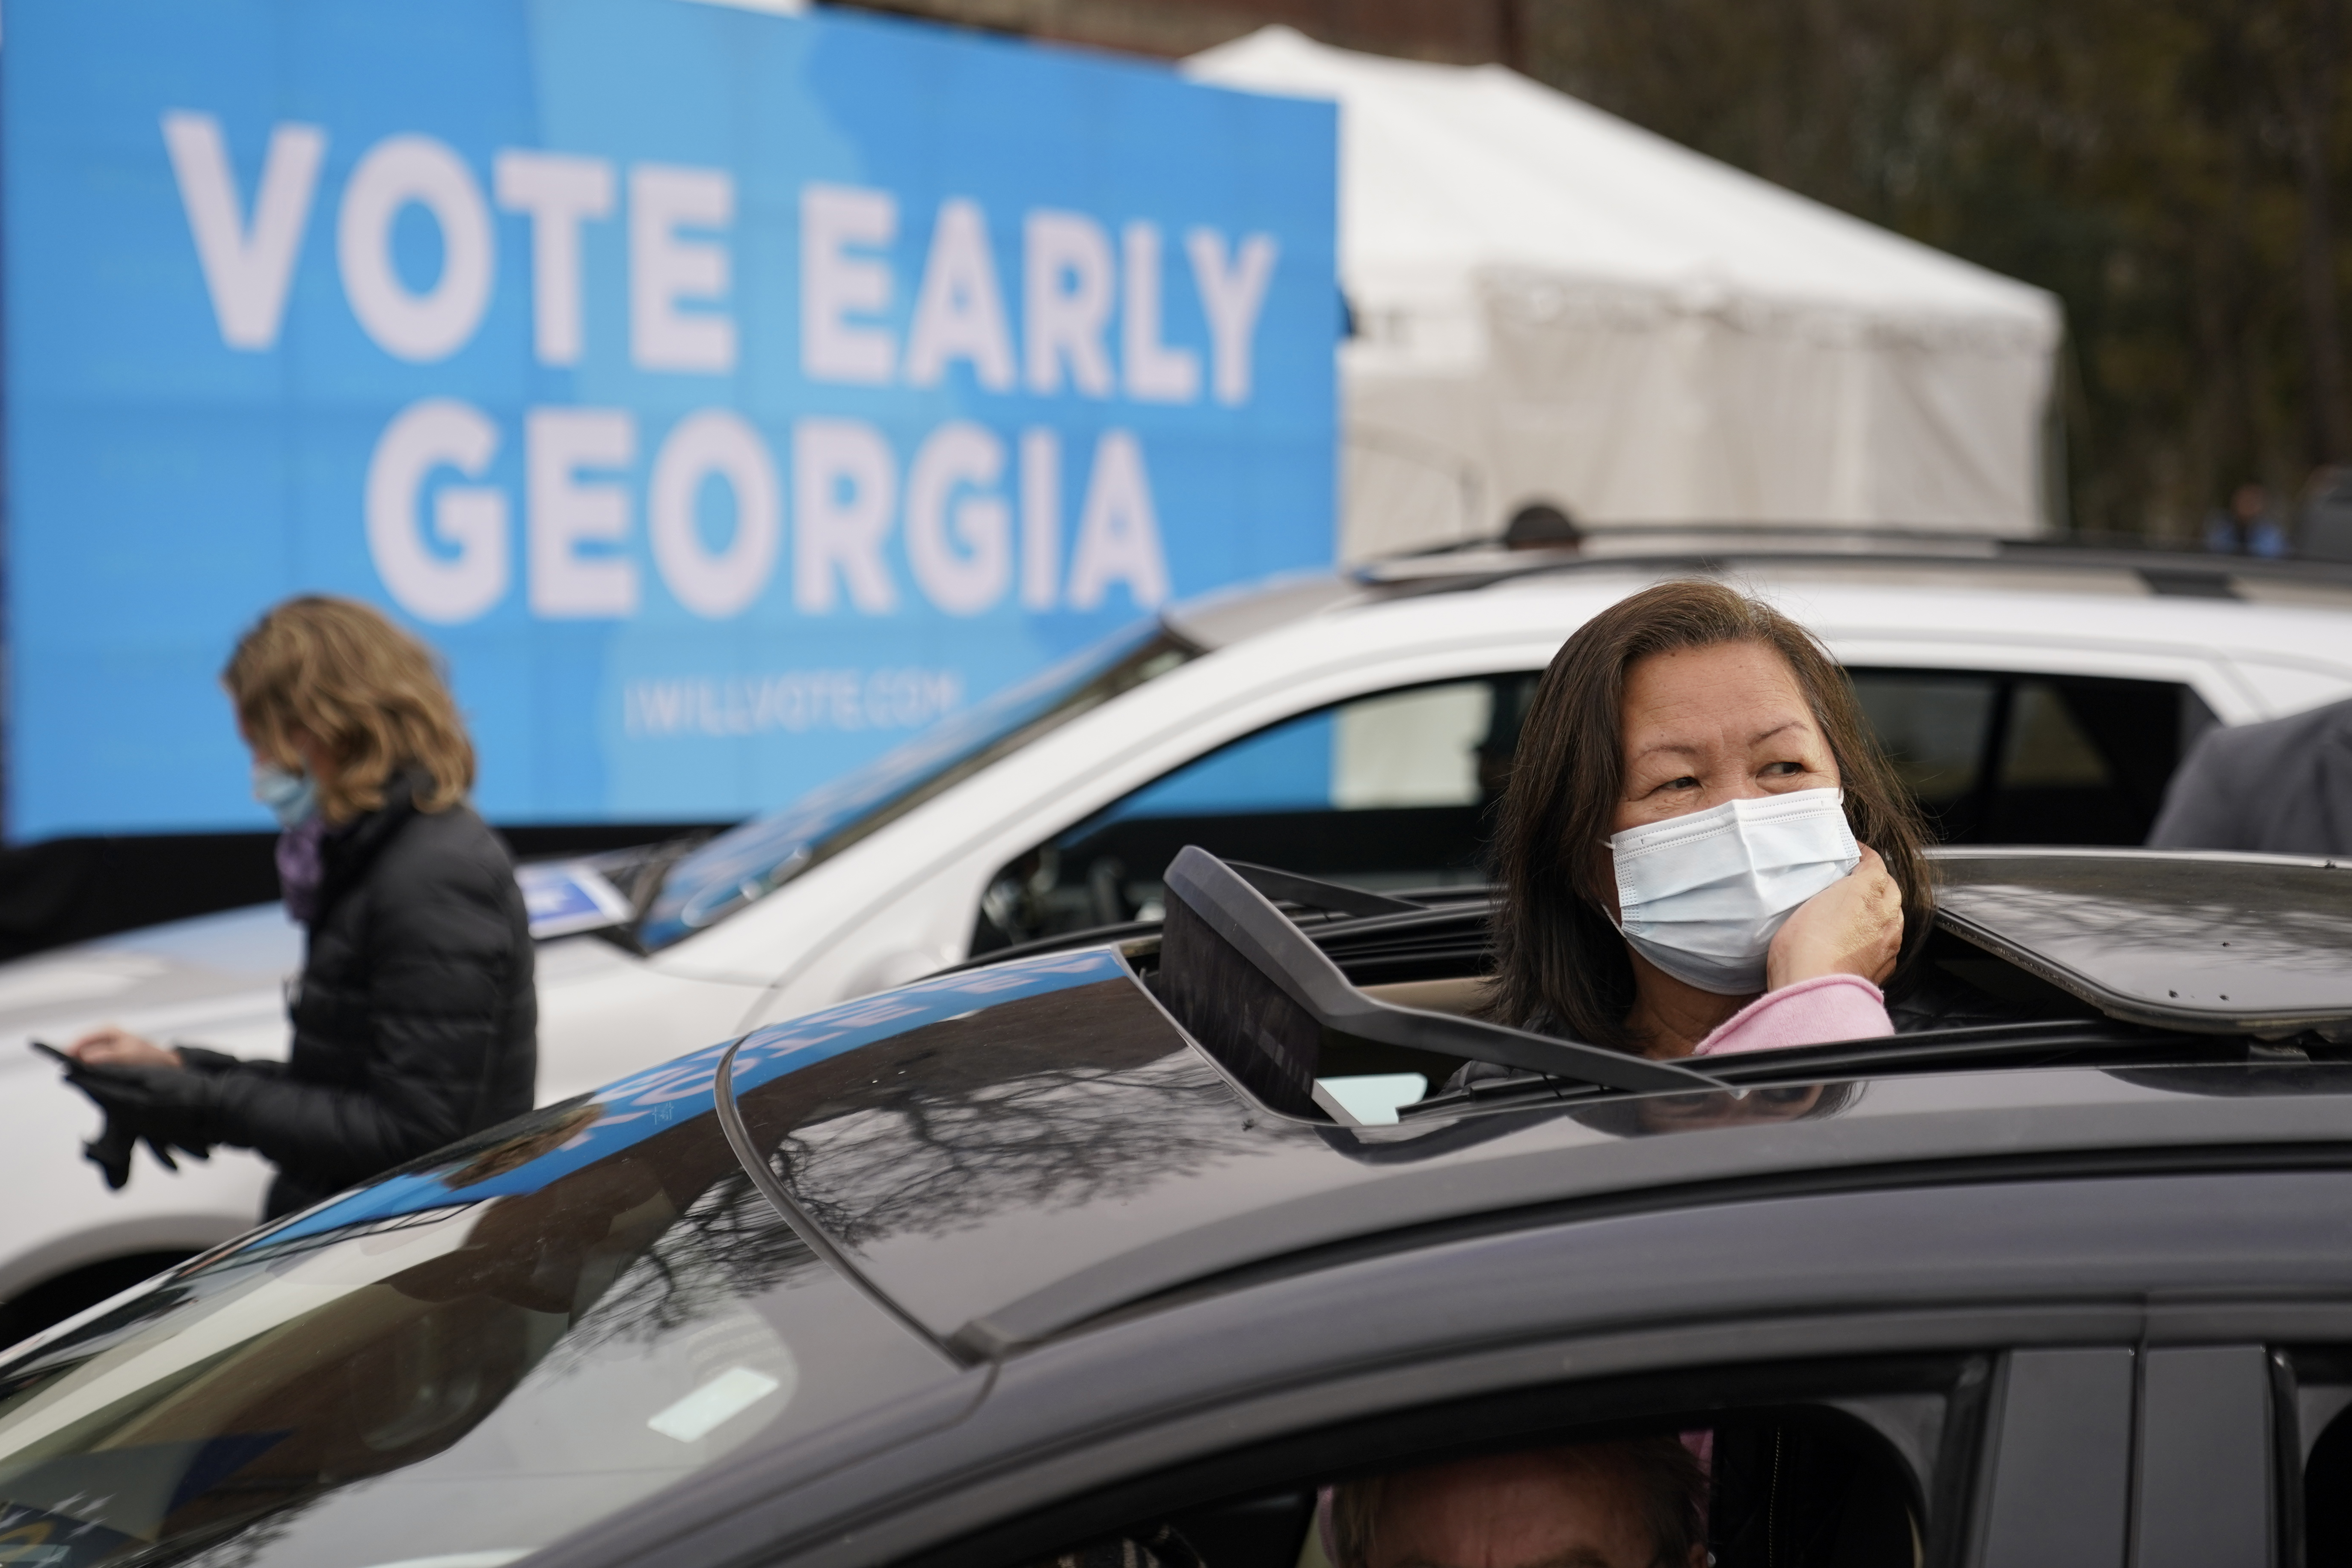 Alabama Republicans And Democrats Work To Get Out The Vote In Georgia Senate Run Off Elections Wrbl Sign in and start exploring all the free, organizational tools for your email. copyright 2020 the associated press all rights reserved